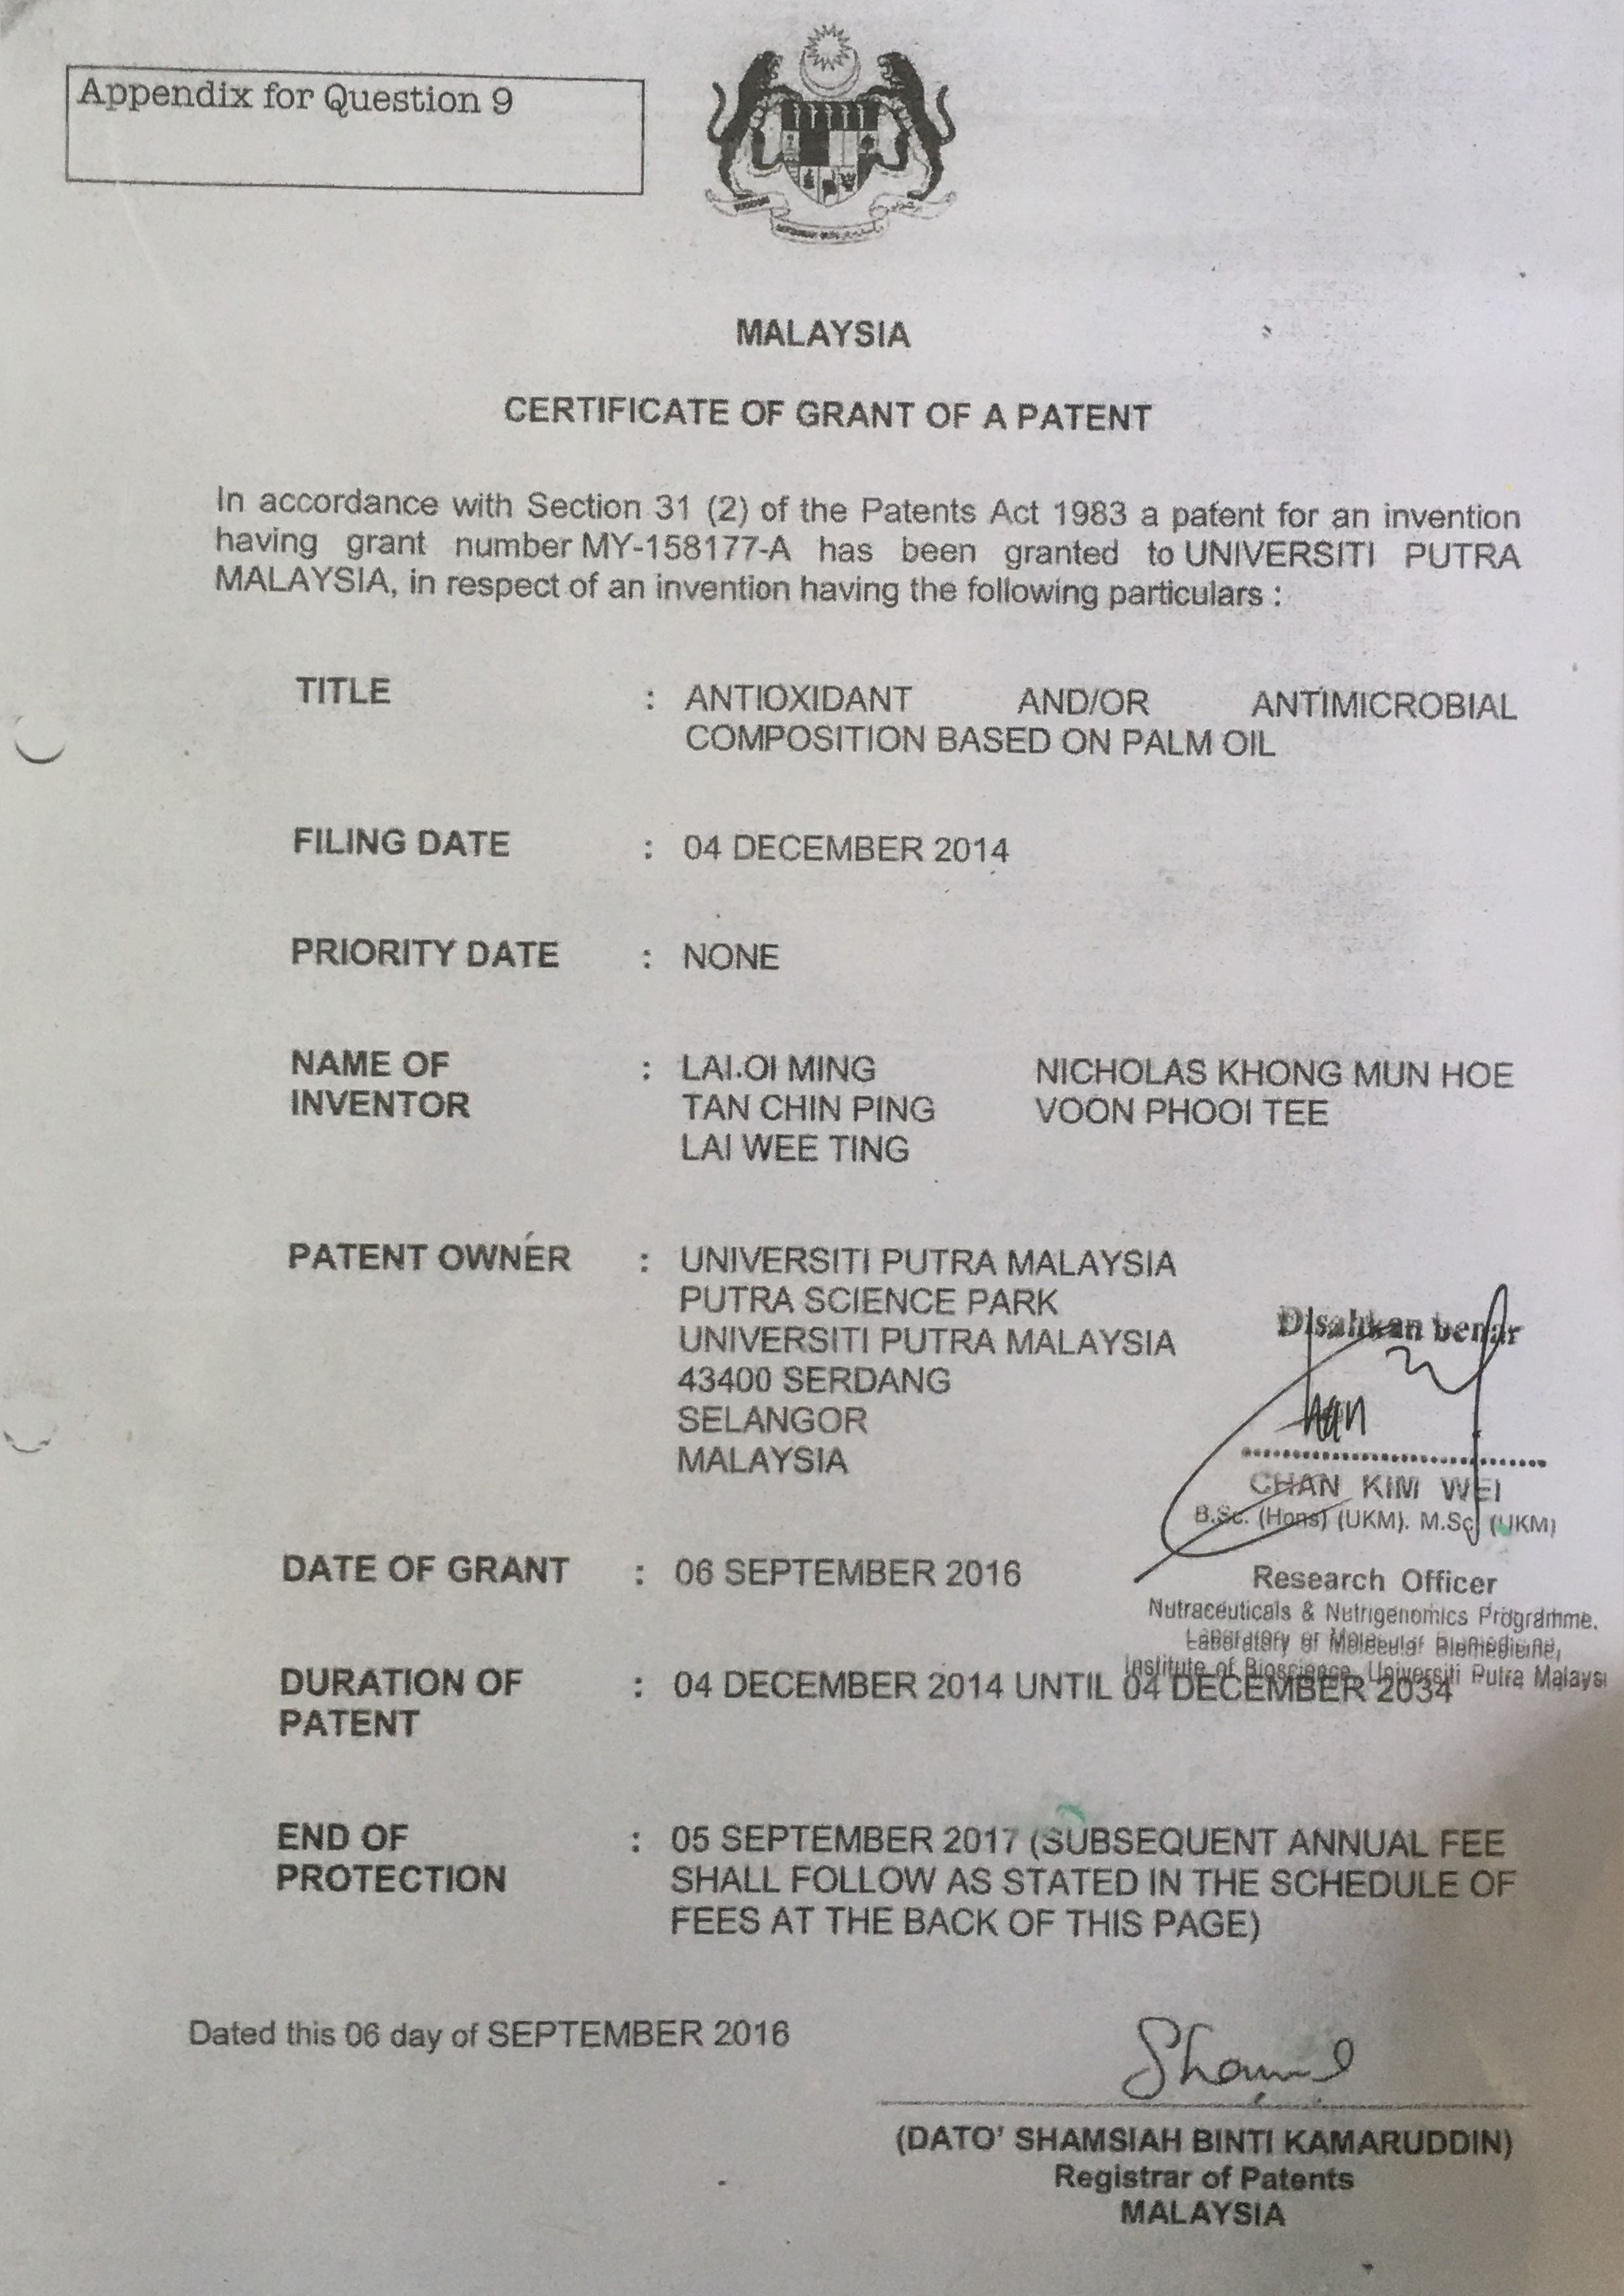 Certificate of Grant of a Patent